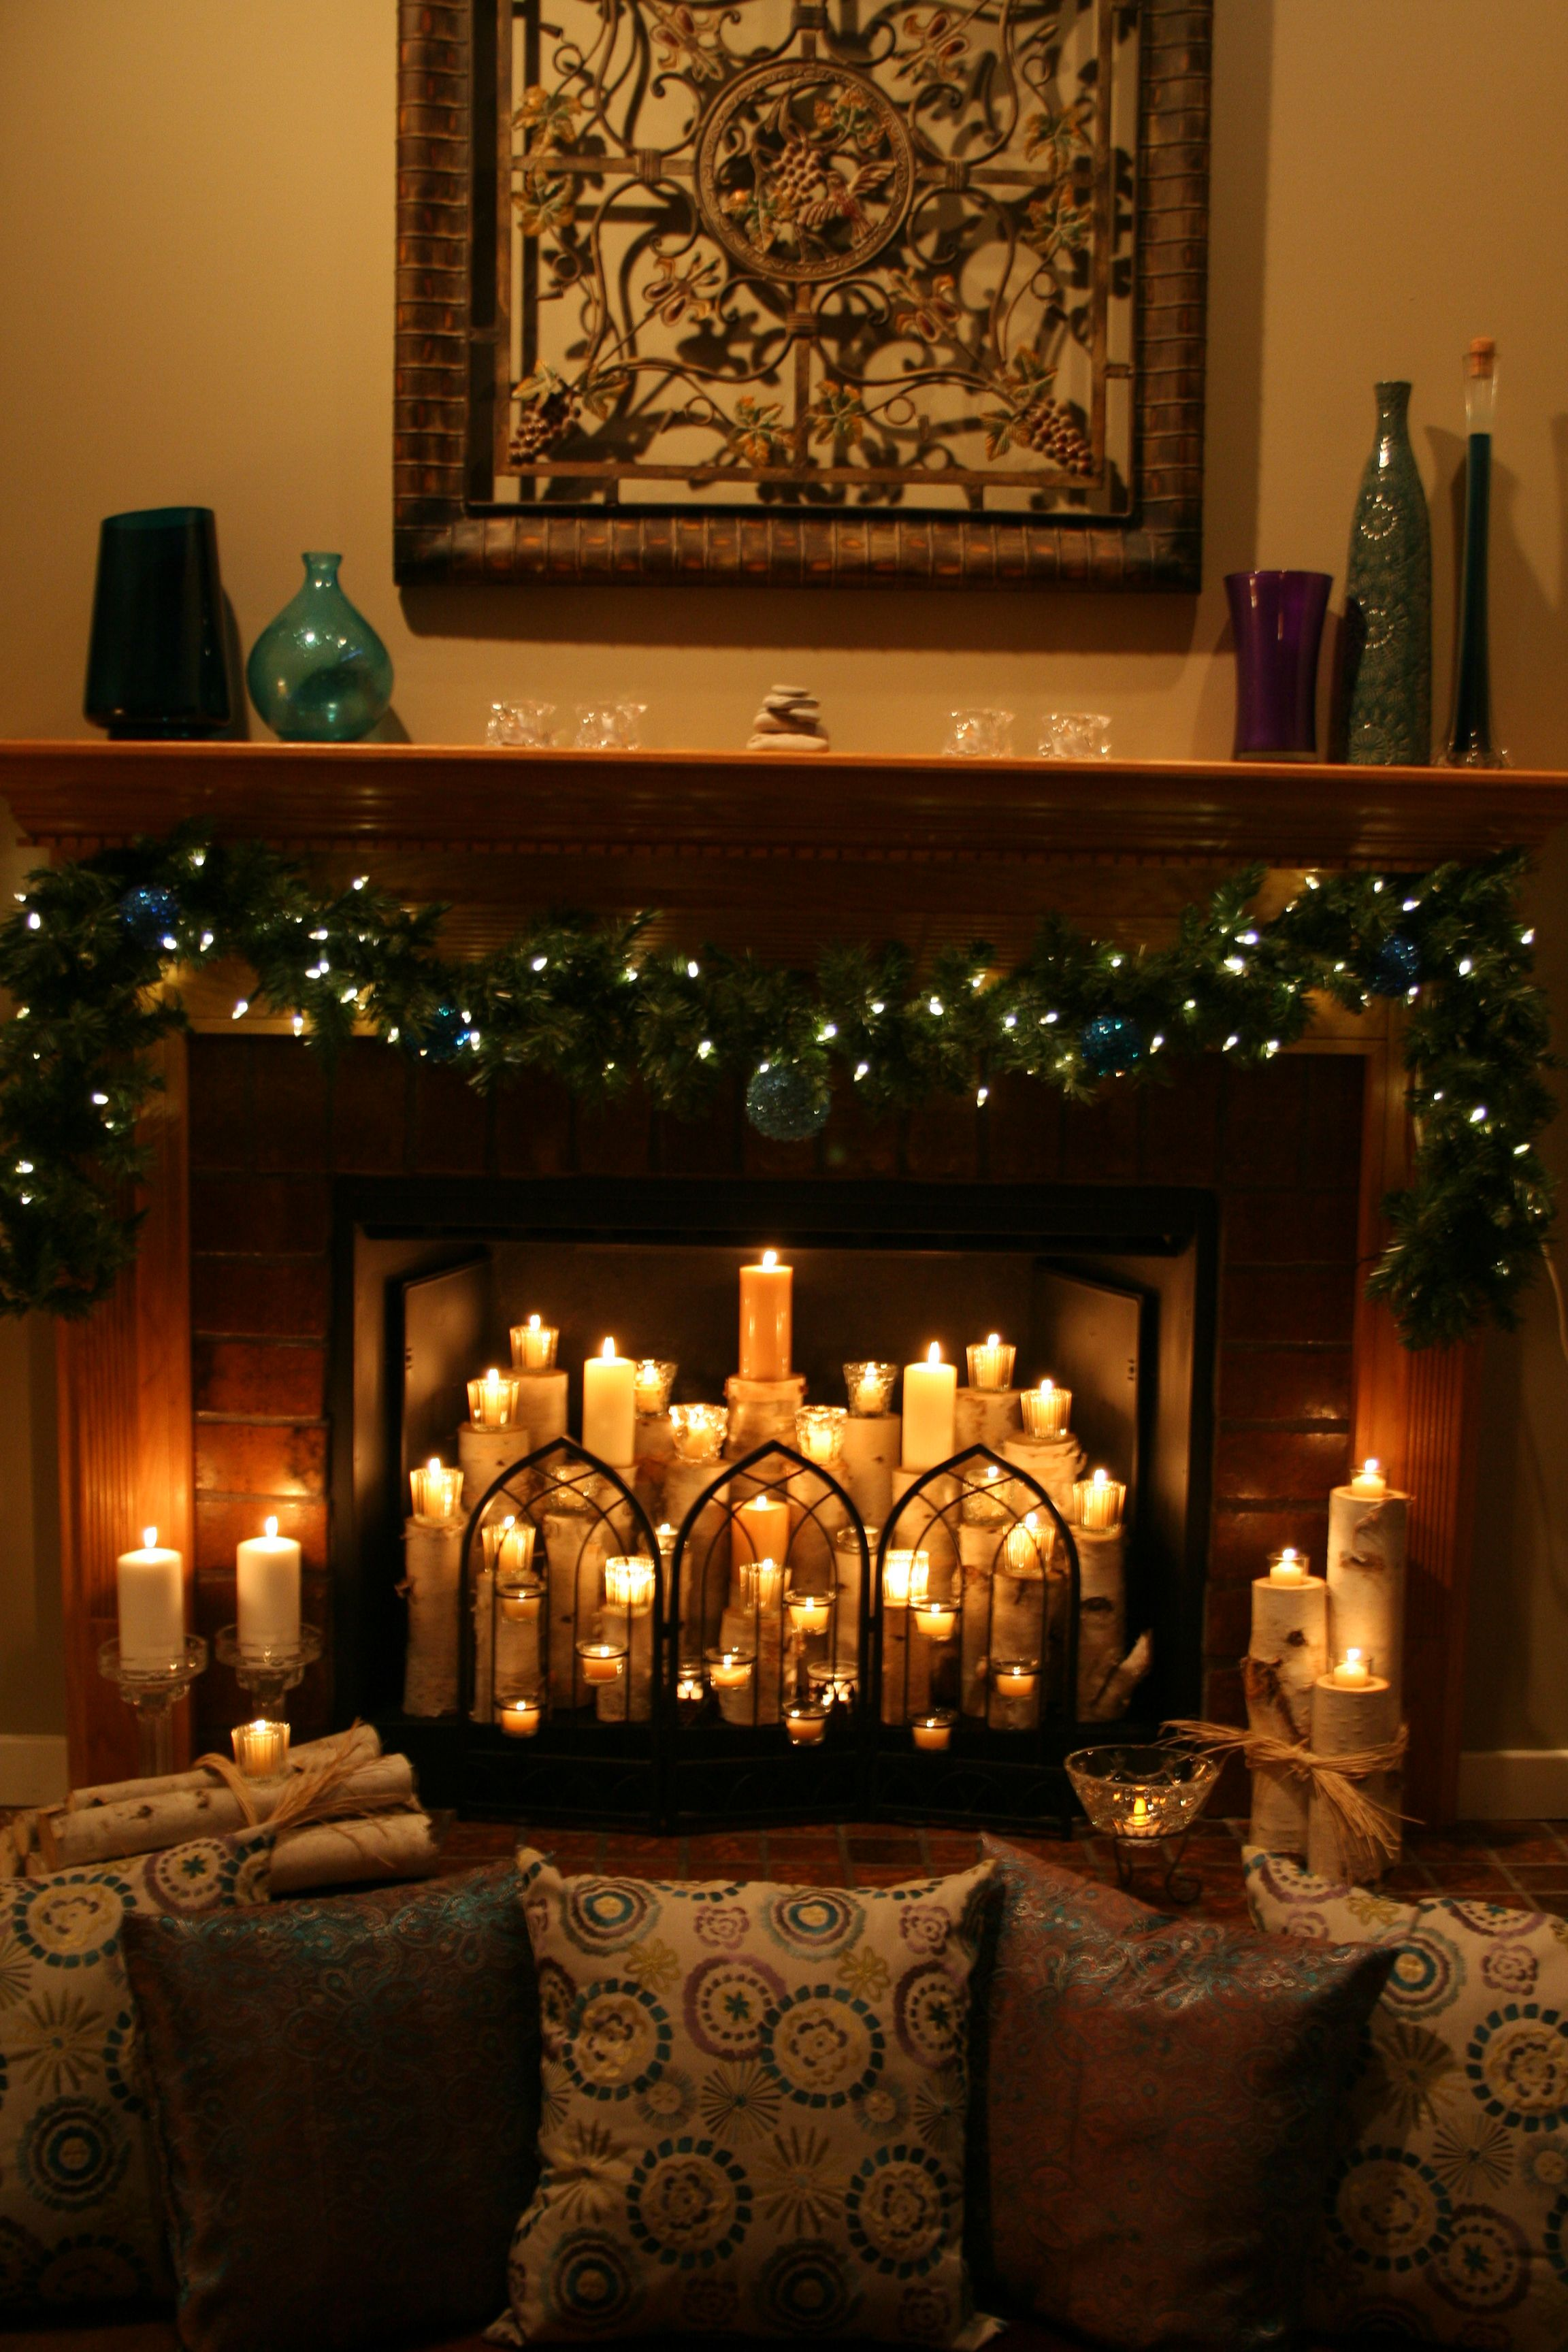 candles for fireplace hearth on pin by jane skapinker on fireplaces candles vignettes displays tablescapes candles in fireplace halloween living room fireplace decor fireplace decor